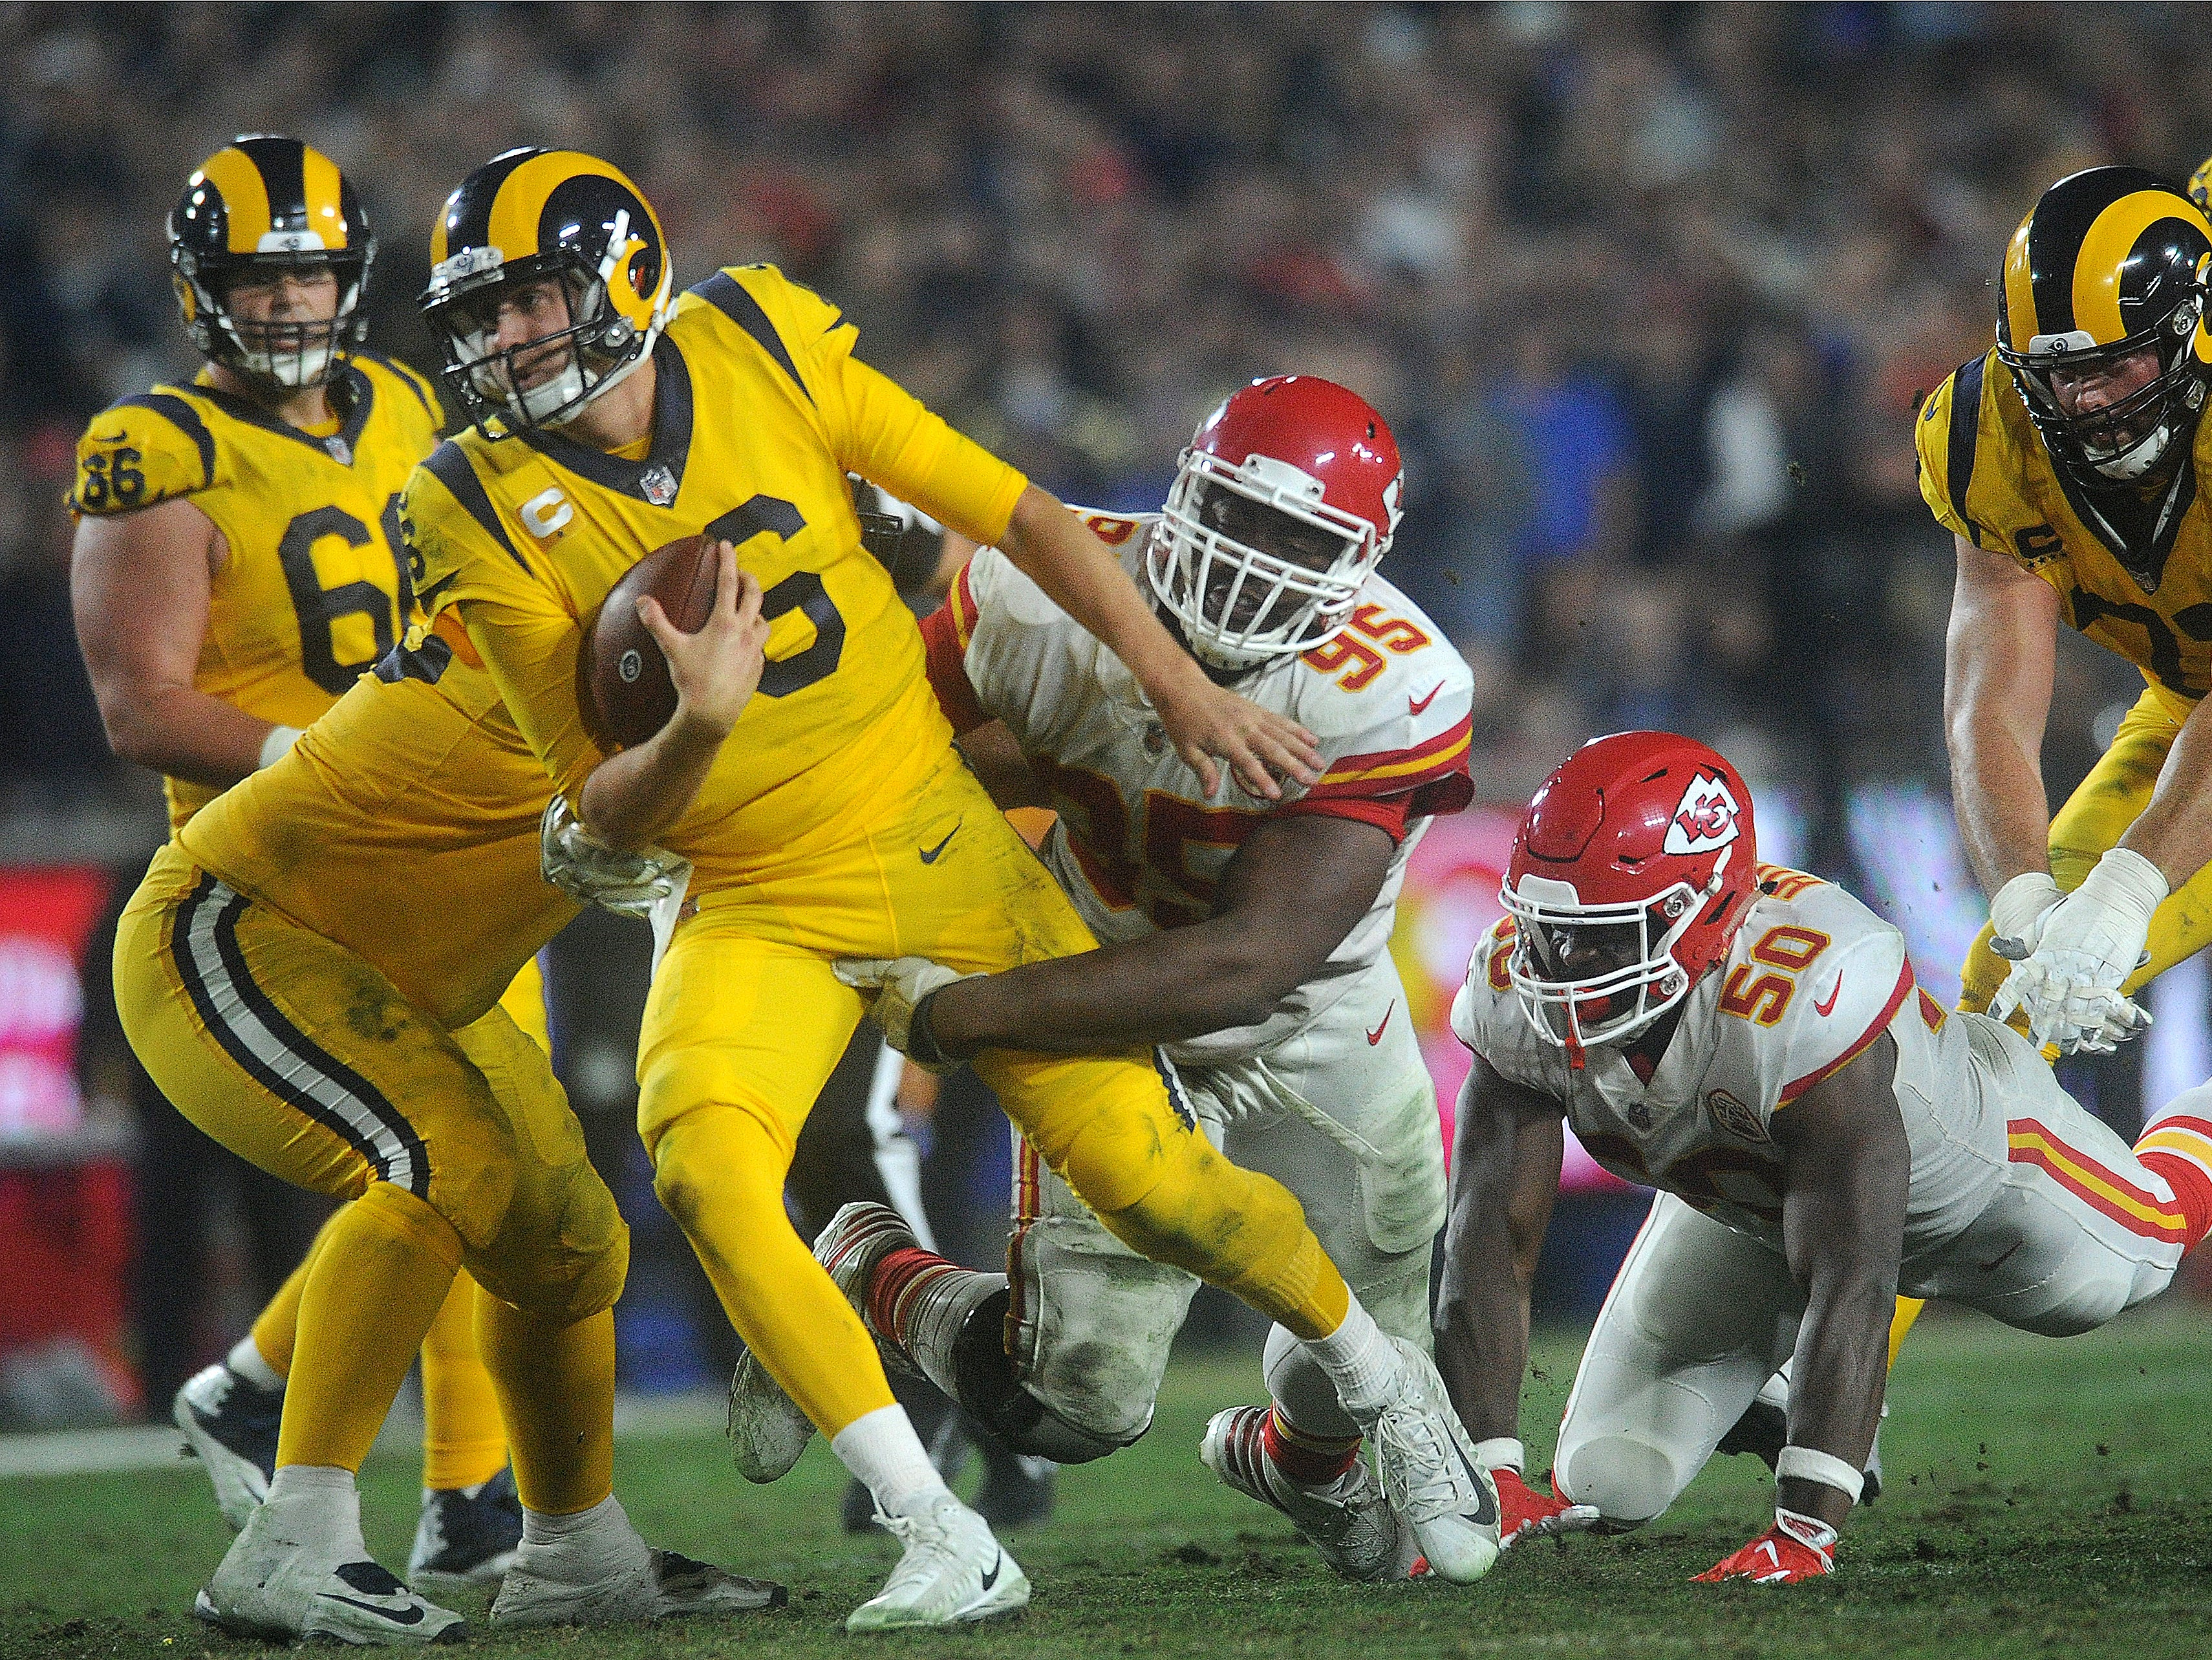 Rams quarterback Jared Goff breaks away from Chris Jones (95) of the Chiefs on Monday night. Goff completed 31 of 49 passes for 413 yards and four touchdowns and ran for another in a record breaking 54-51 epic battle with the Chiefs on Monday night.